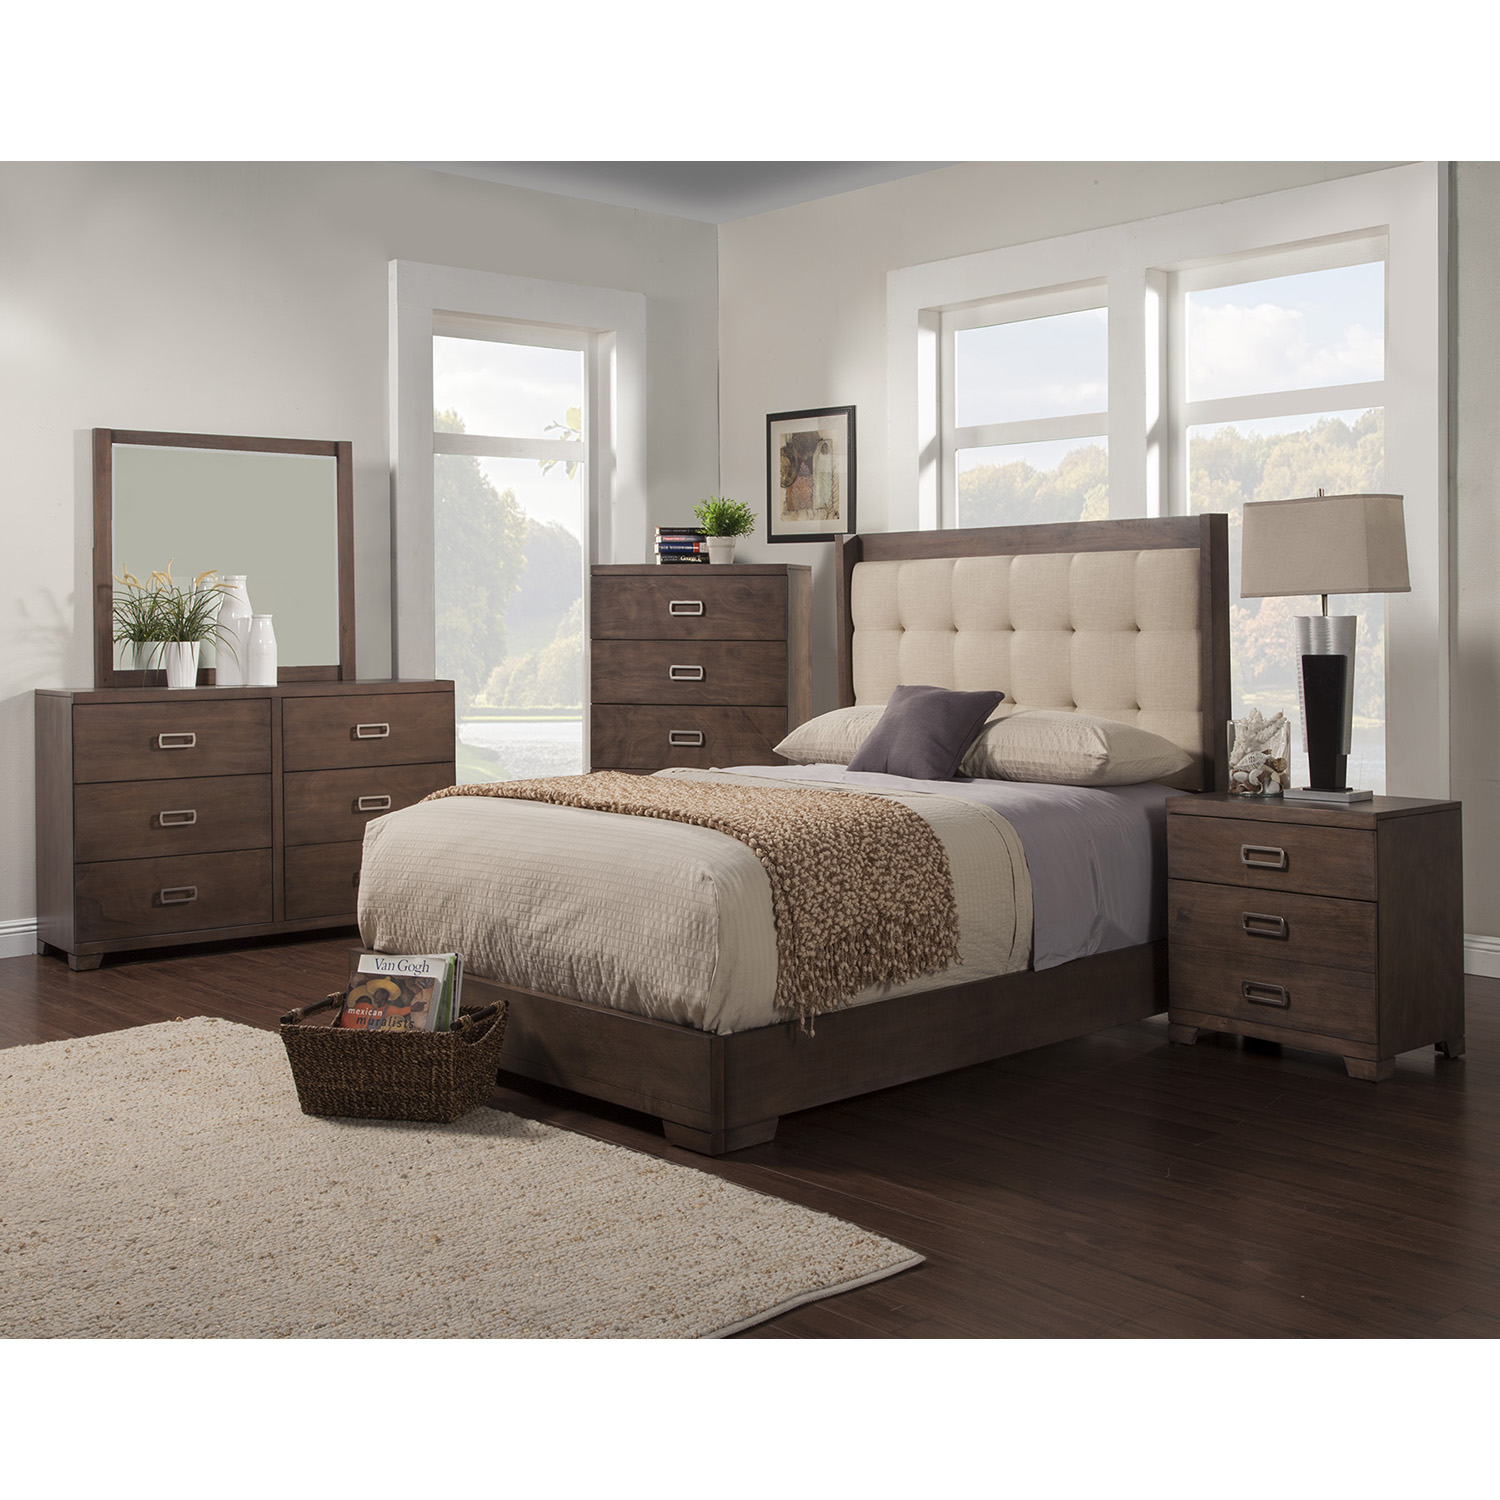 Savannah Platform Bed - Pecan, Tufted, Upholstered Headboard - ALP-1100-BED